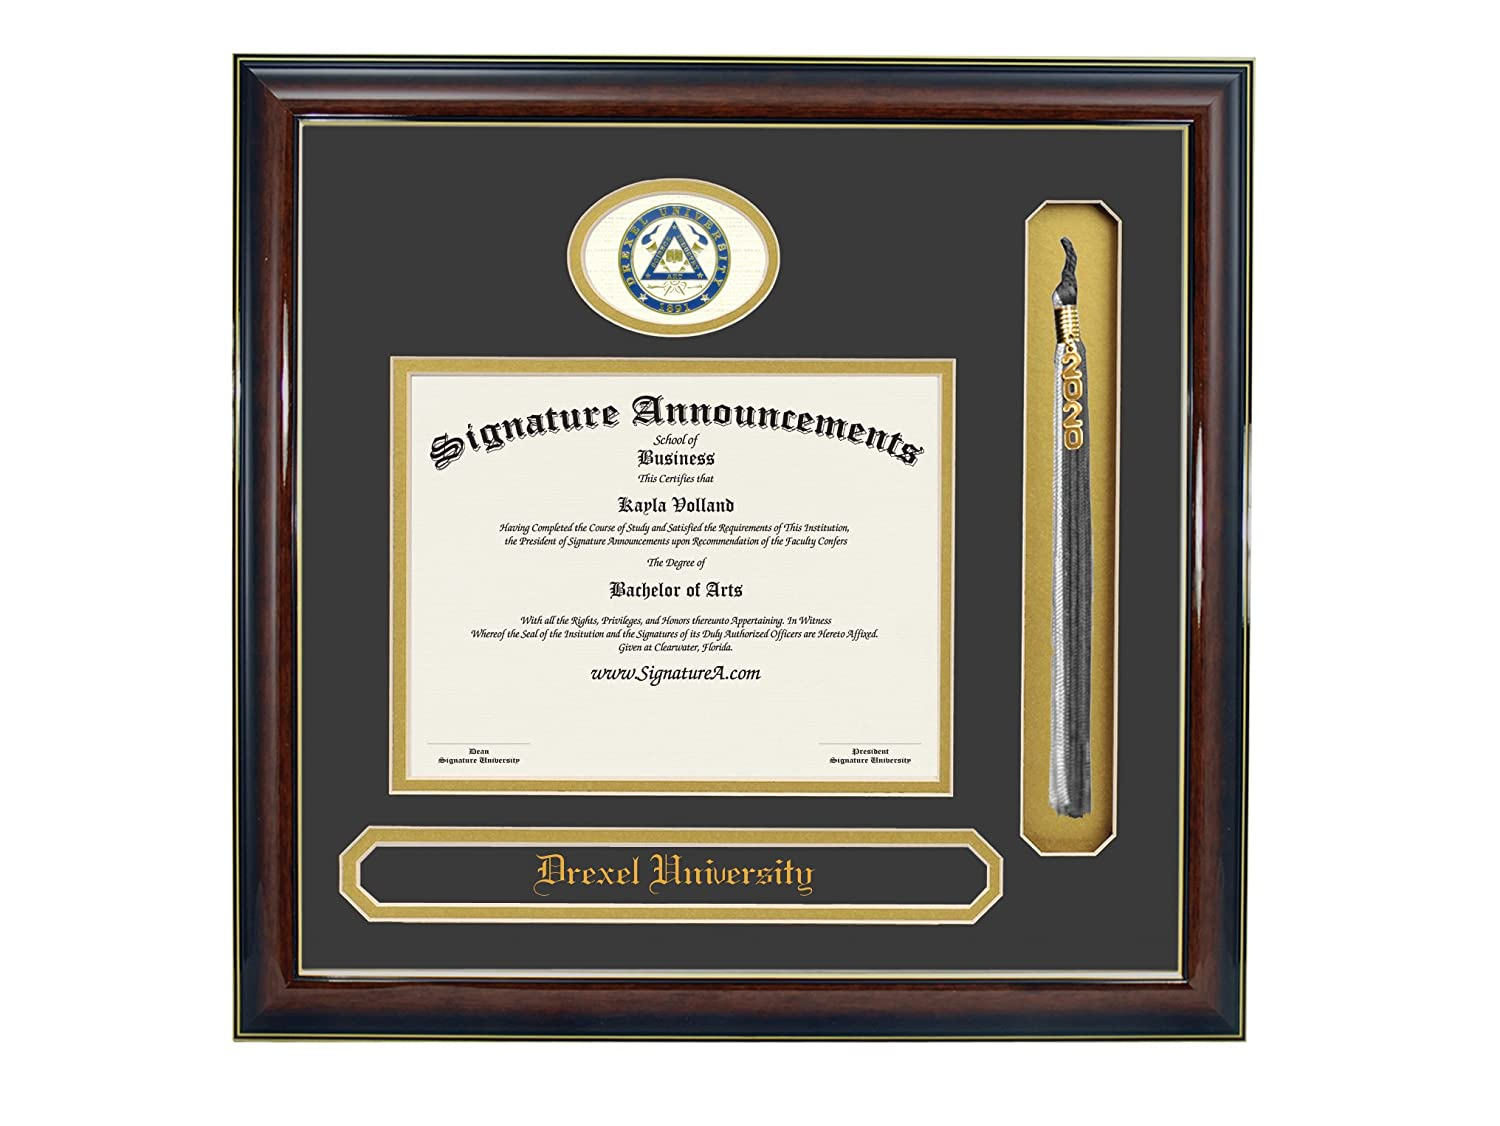 Signature Announcements Drexel-University Undergraduate Sculpted Foil Seal Name /& Tassel Graduation Diploma Frame 20 x 20 Gloss Mahogany with Gold Accent